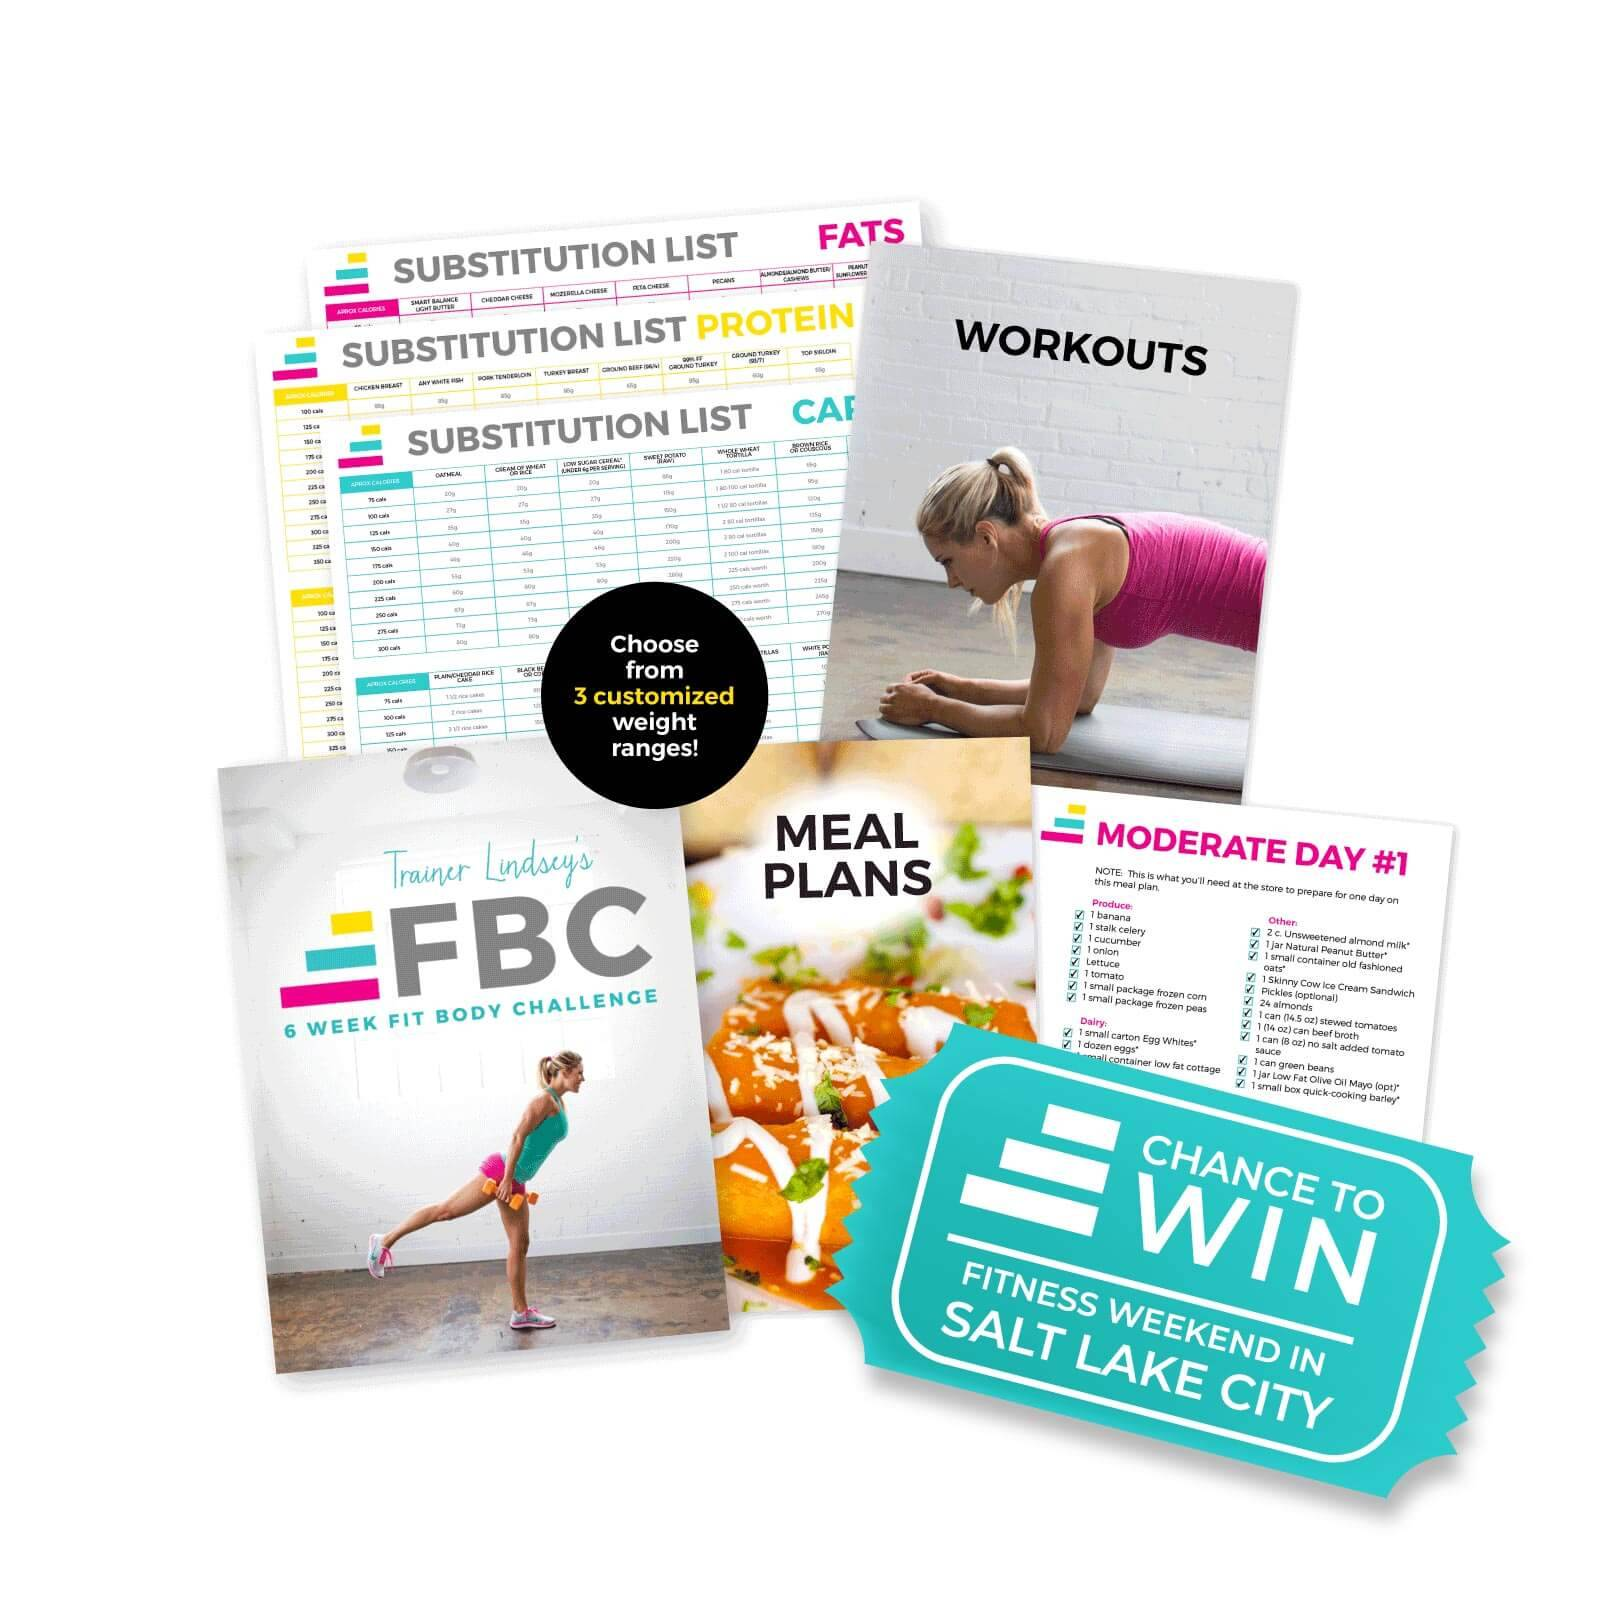 IdealFit Trainer Lindsey's Six Week Fit Body Challenge